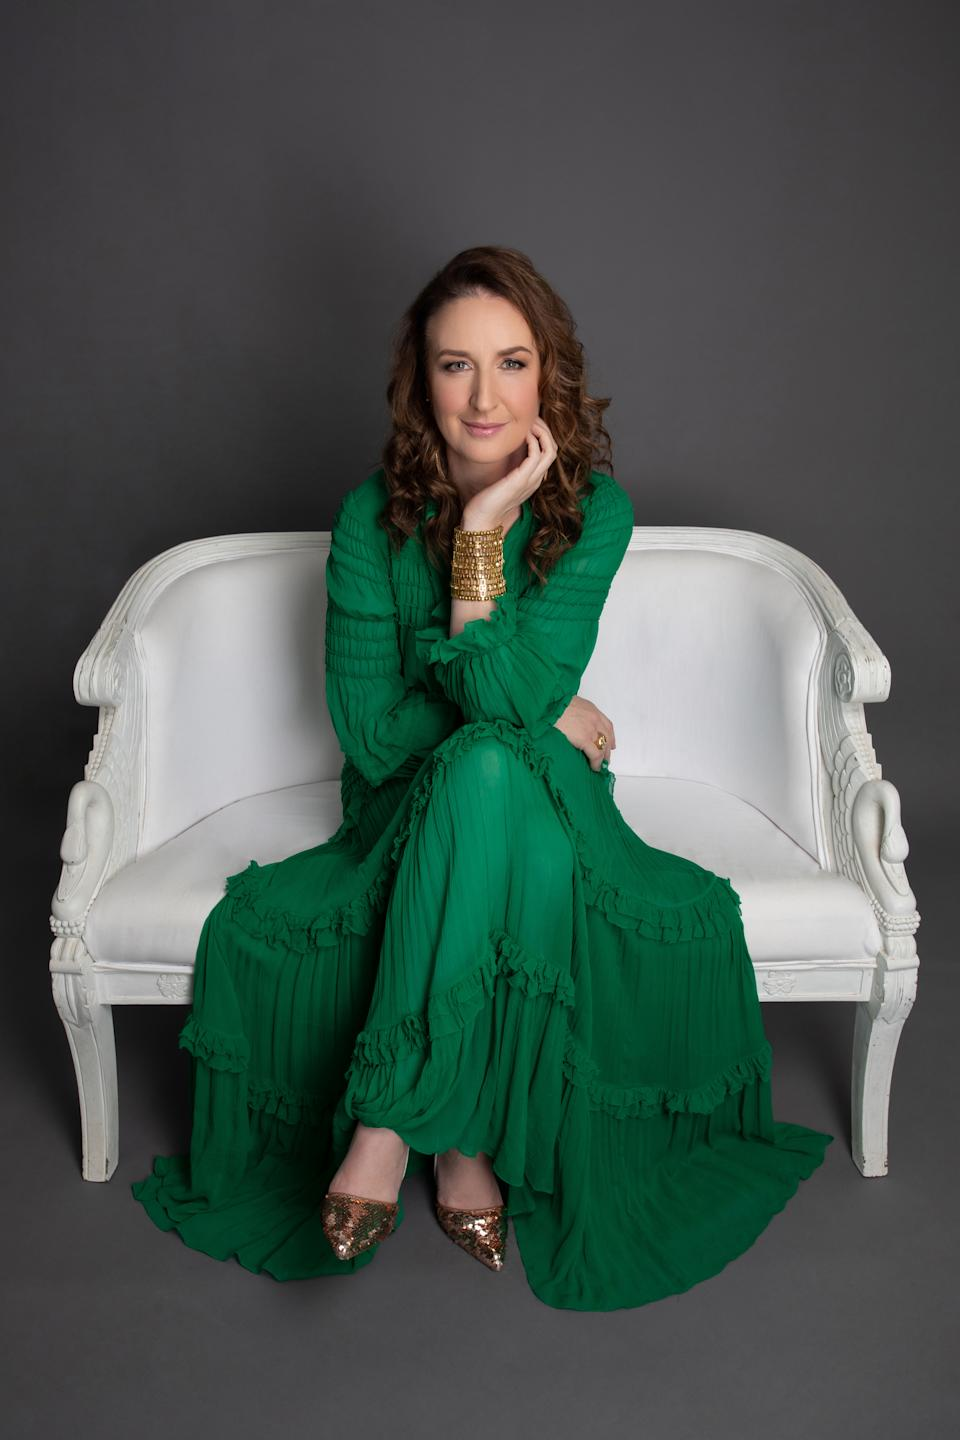 Woman in green dress sitting on a couch